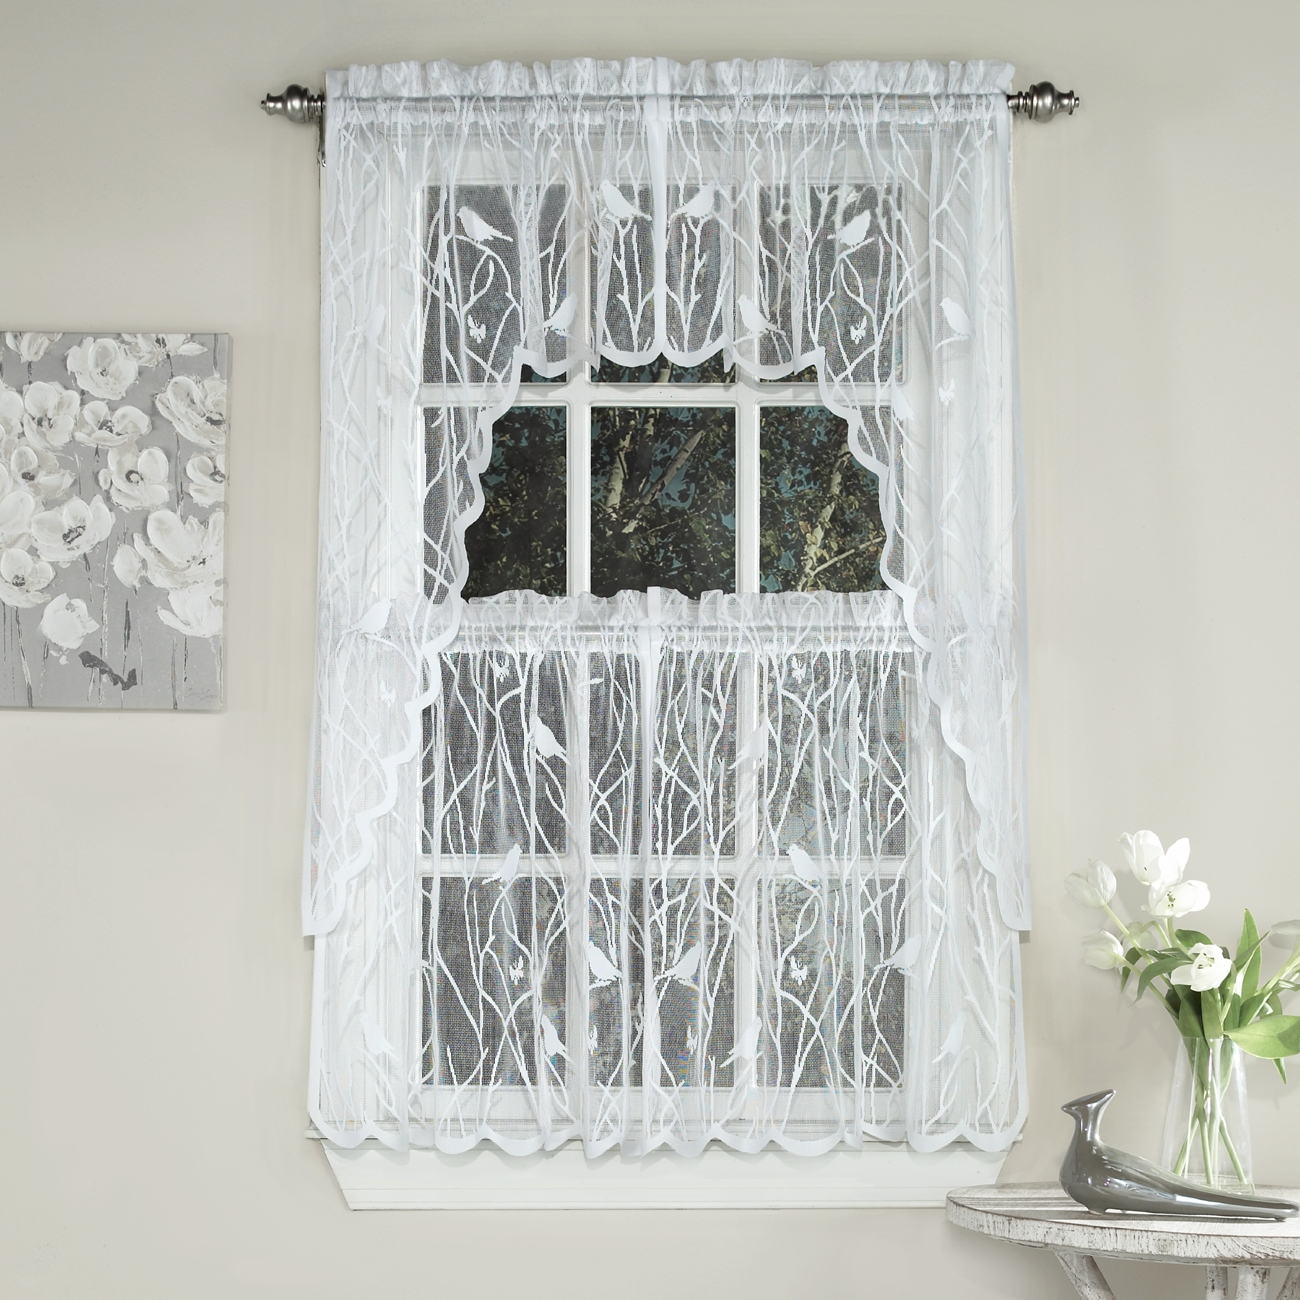 Songbird Sheer Kitchen Curtains. Zoom